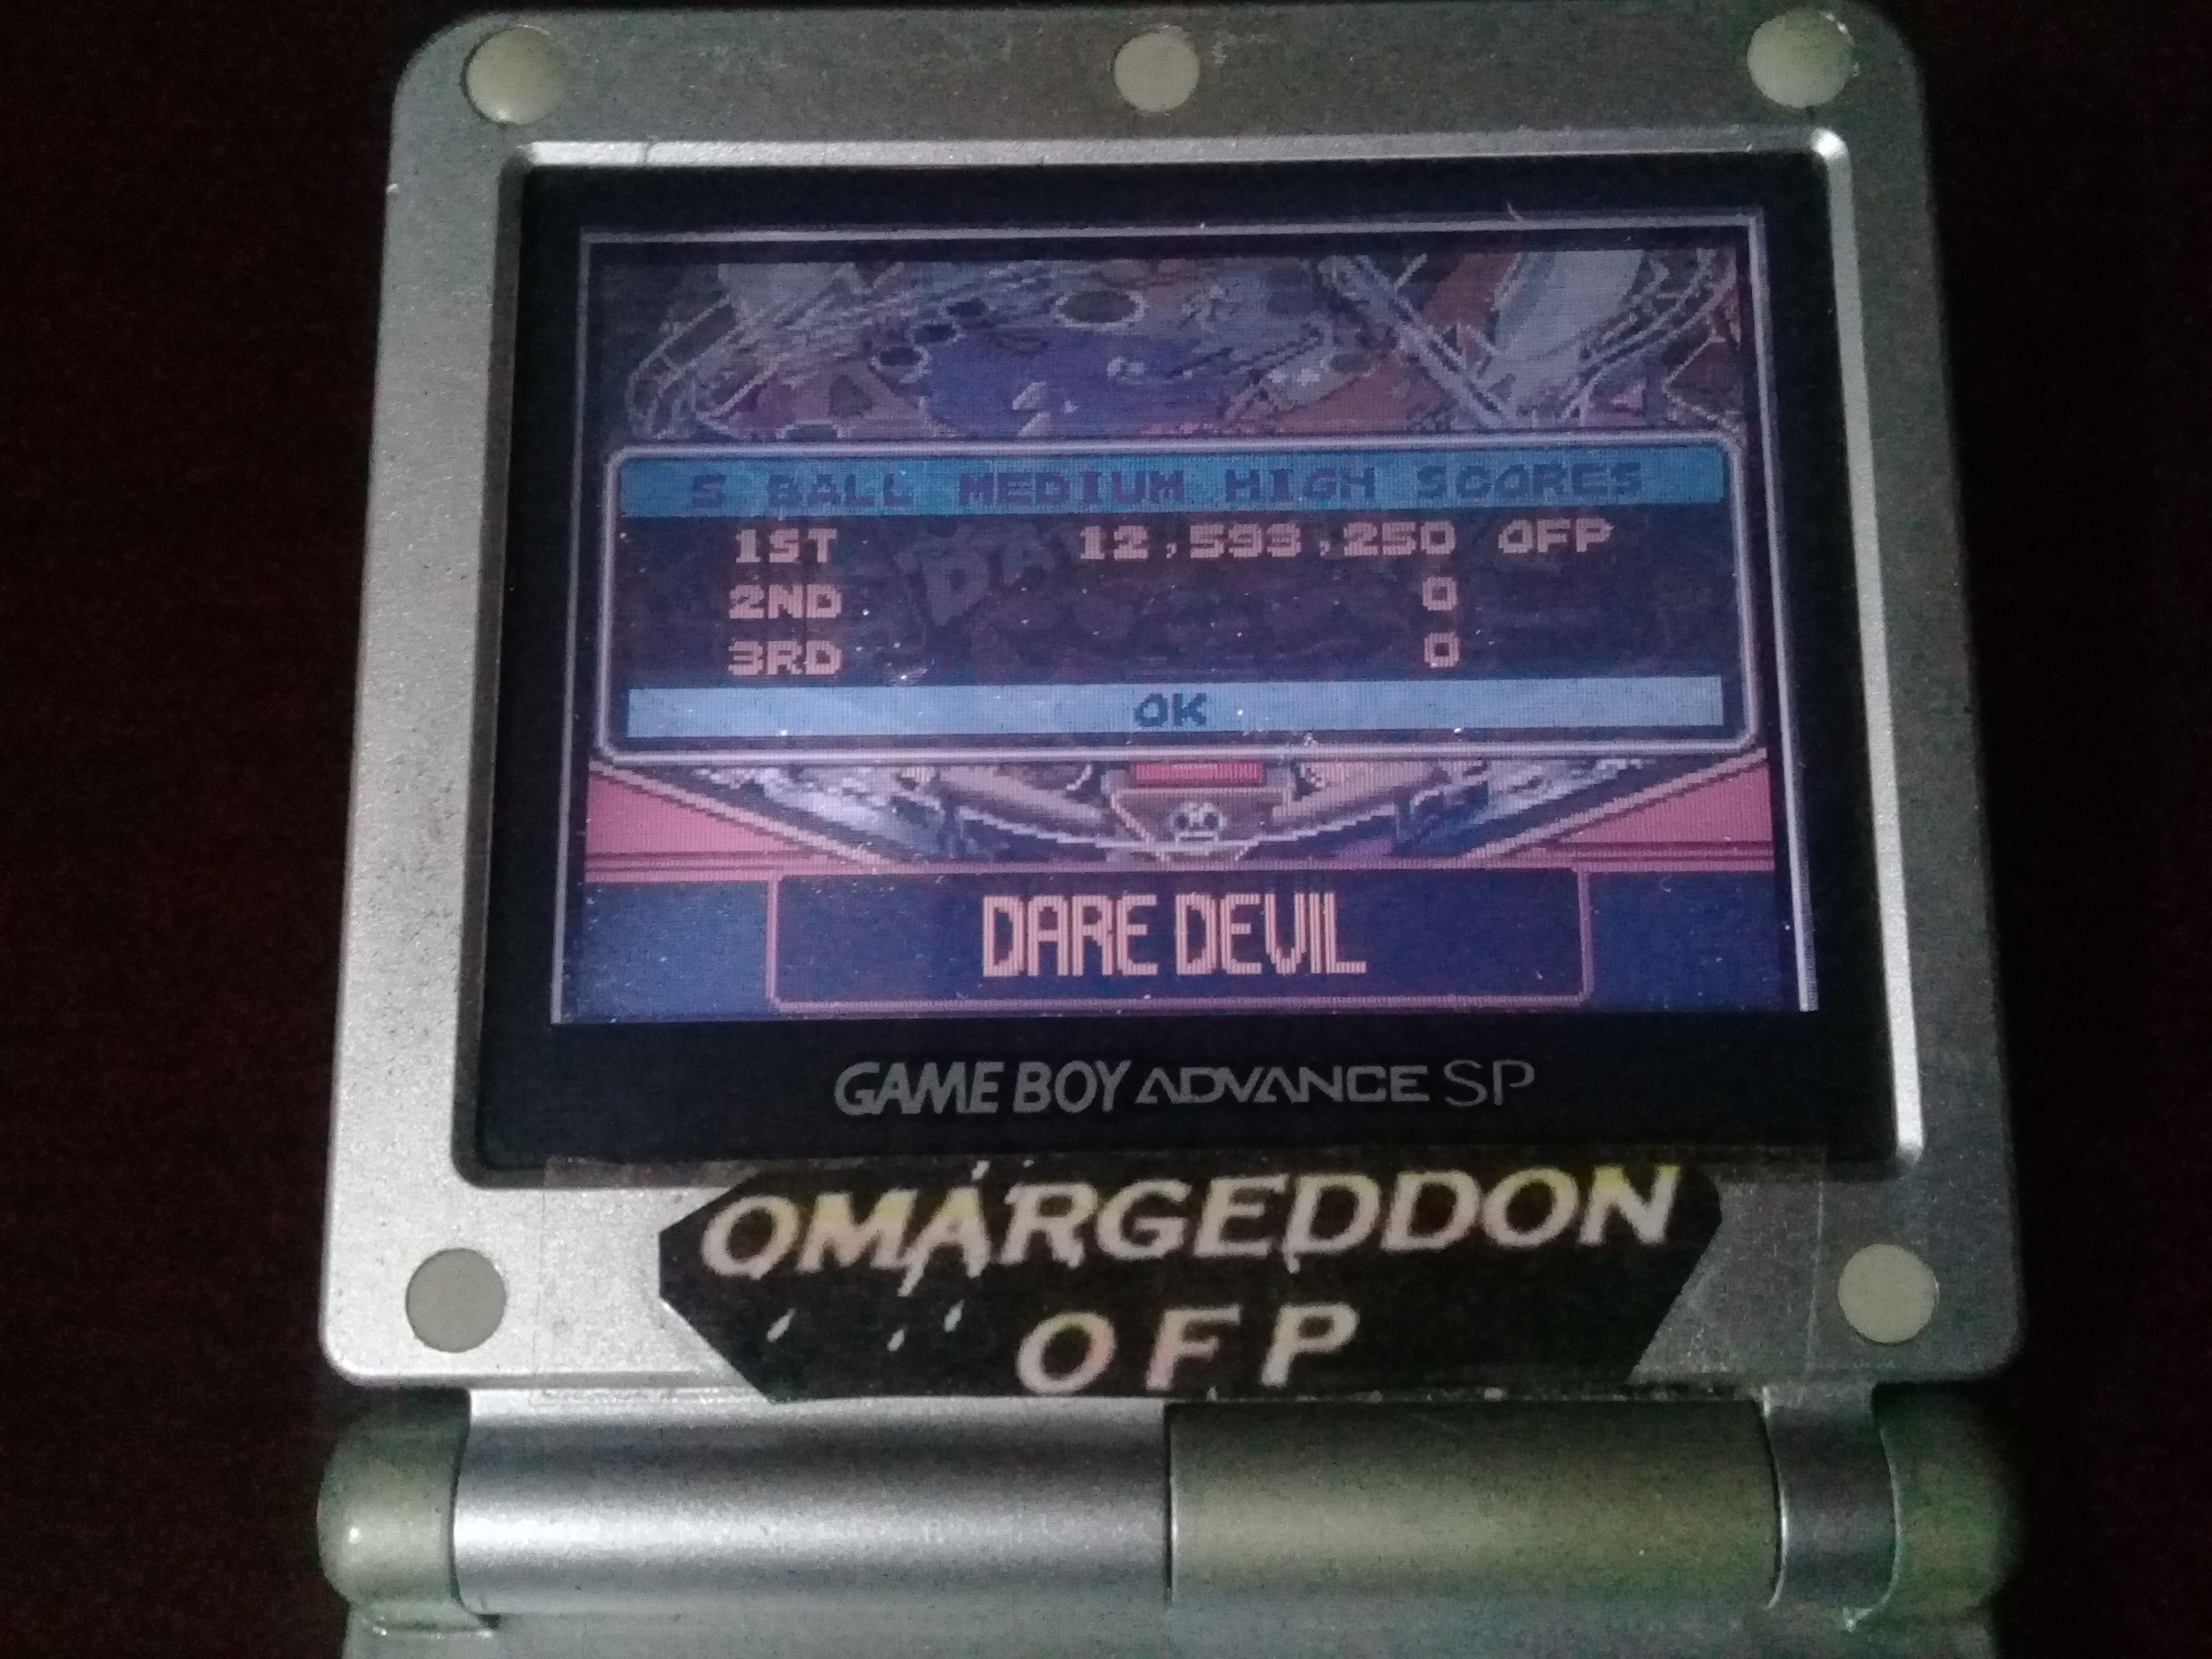 omargeddon: Pinball Advance: Dare Devil [5 Balls] [Medium] (GBA) 12,593,250 points on 2019-10-02 23:40:24